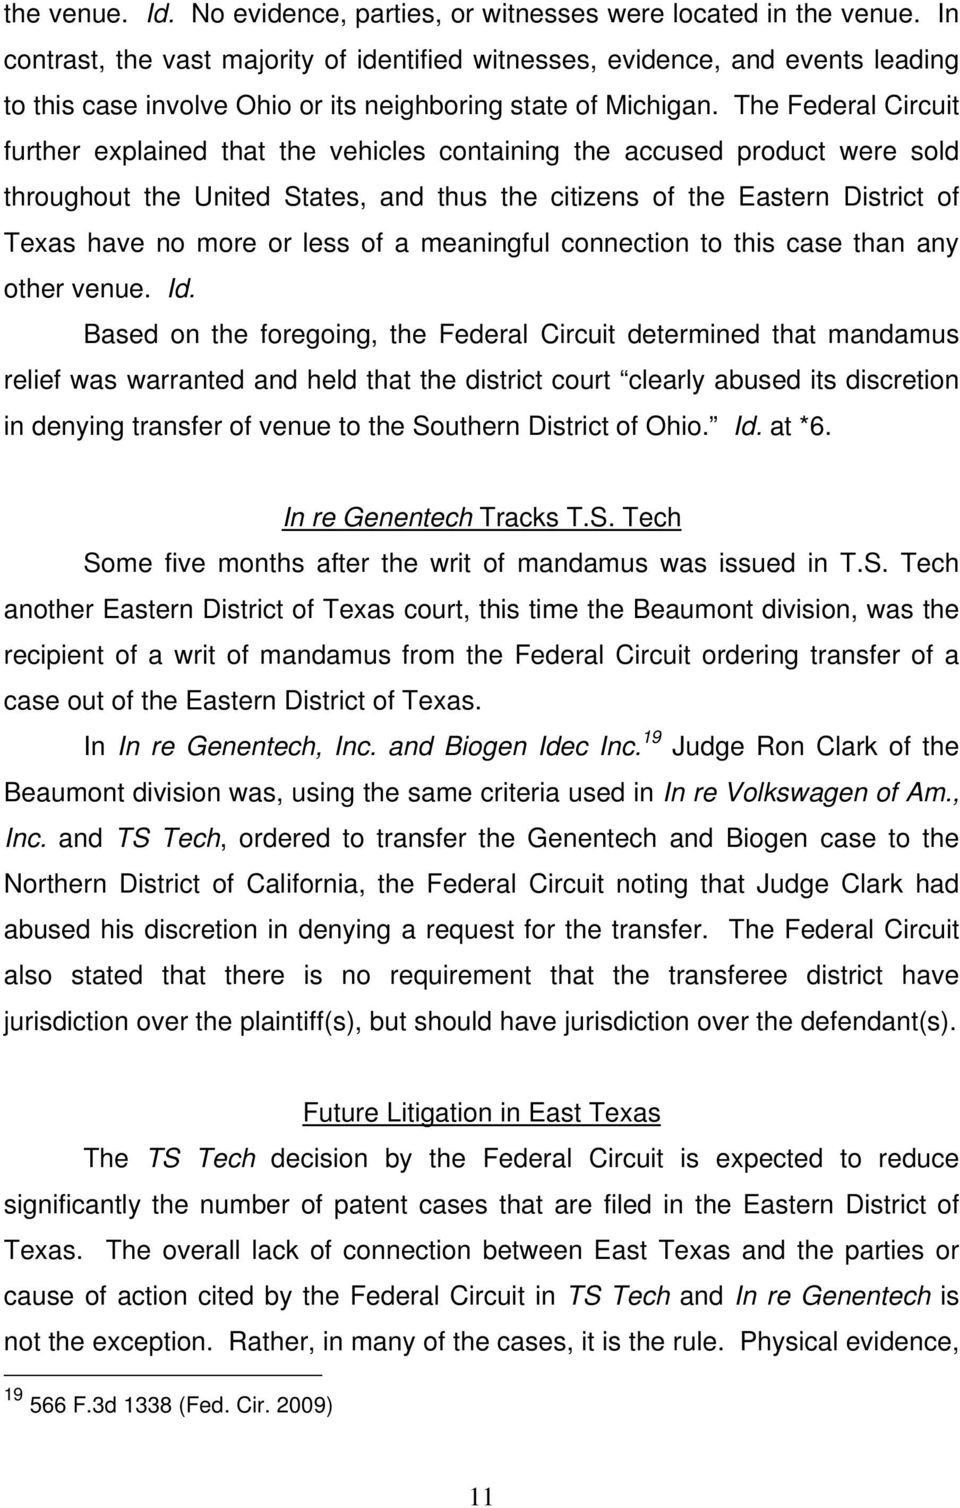 The Federal Circuit further explained that the vehicles containing the accused product were sold throughout the United States, and thus the citizens of the Eastern District of Texas have no more or